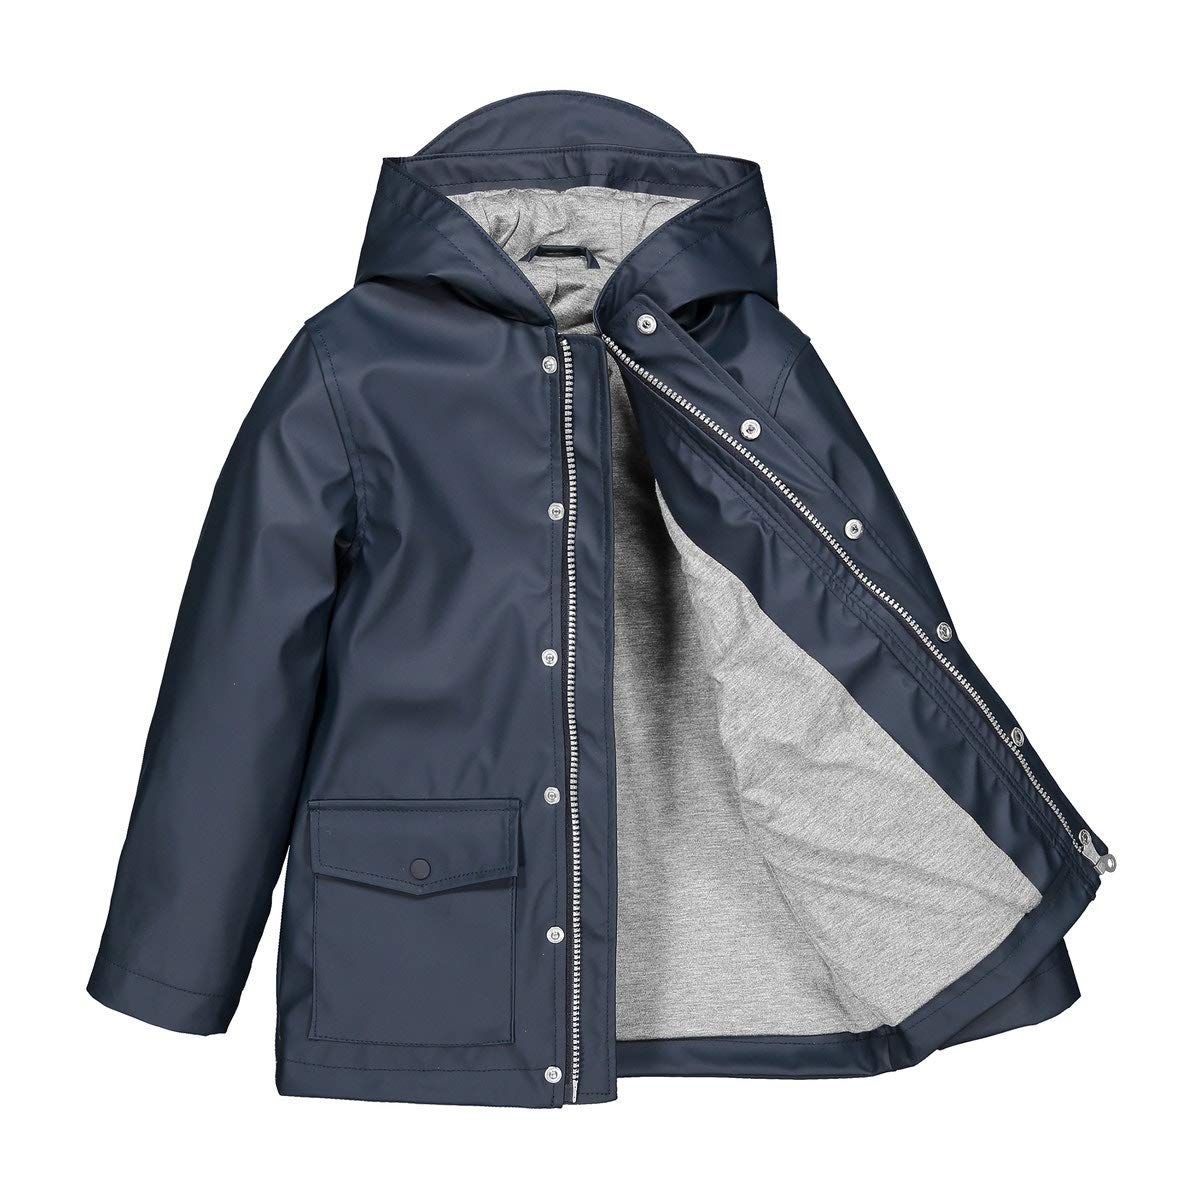 La Redoute Collections Waterproof Hooded Raincoat, 3-12 Years Blue Size 4 Years (102 cm)